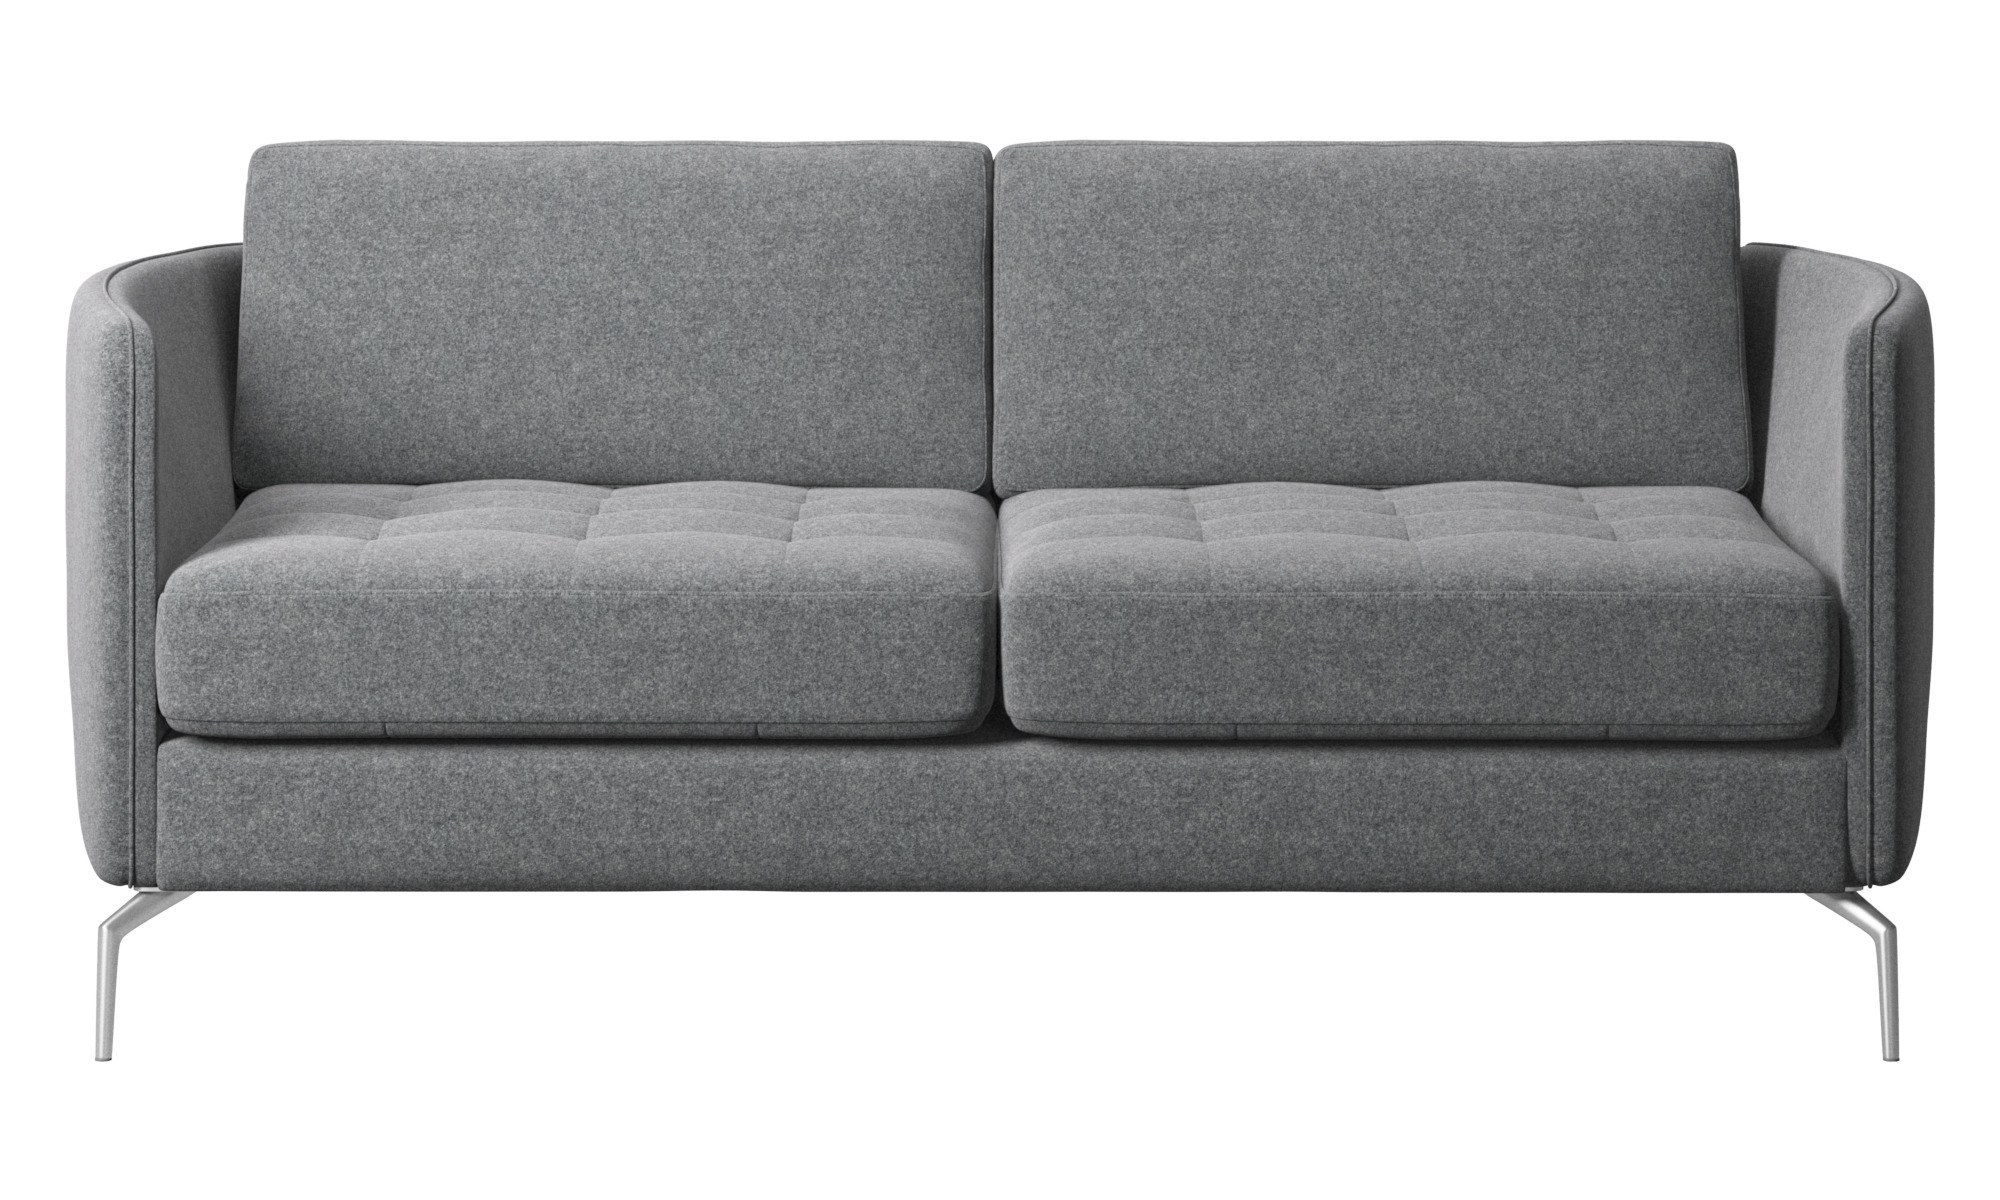 2 Seater Sofas Osaka Sofa Tufted